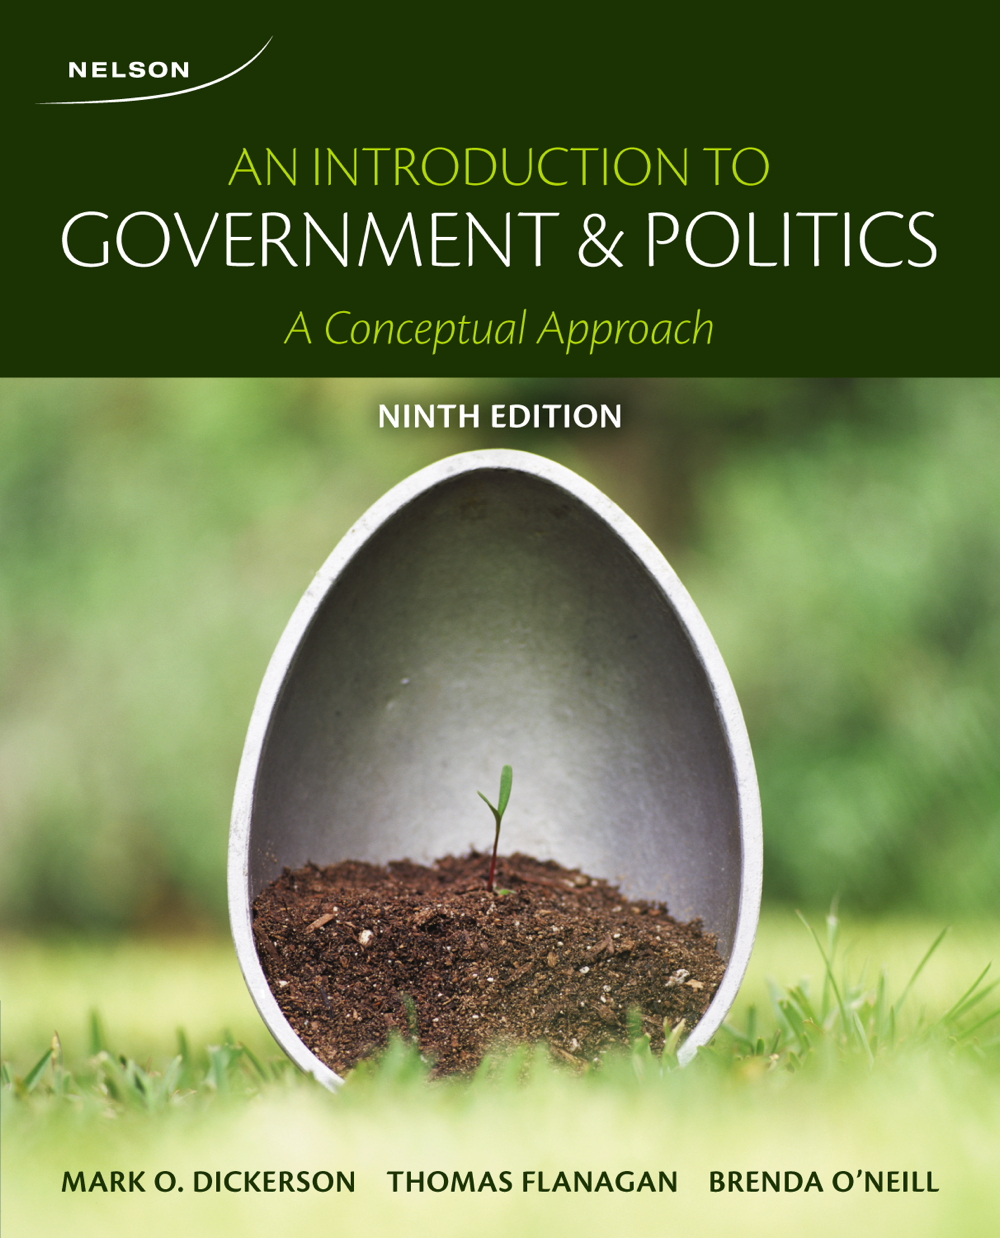 eBook: An Introduction to Government and Politics 9e - 9780176544430(eBook)